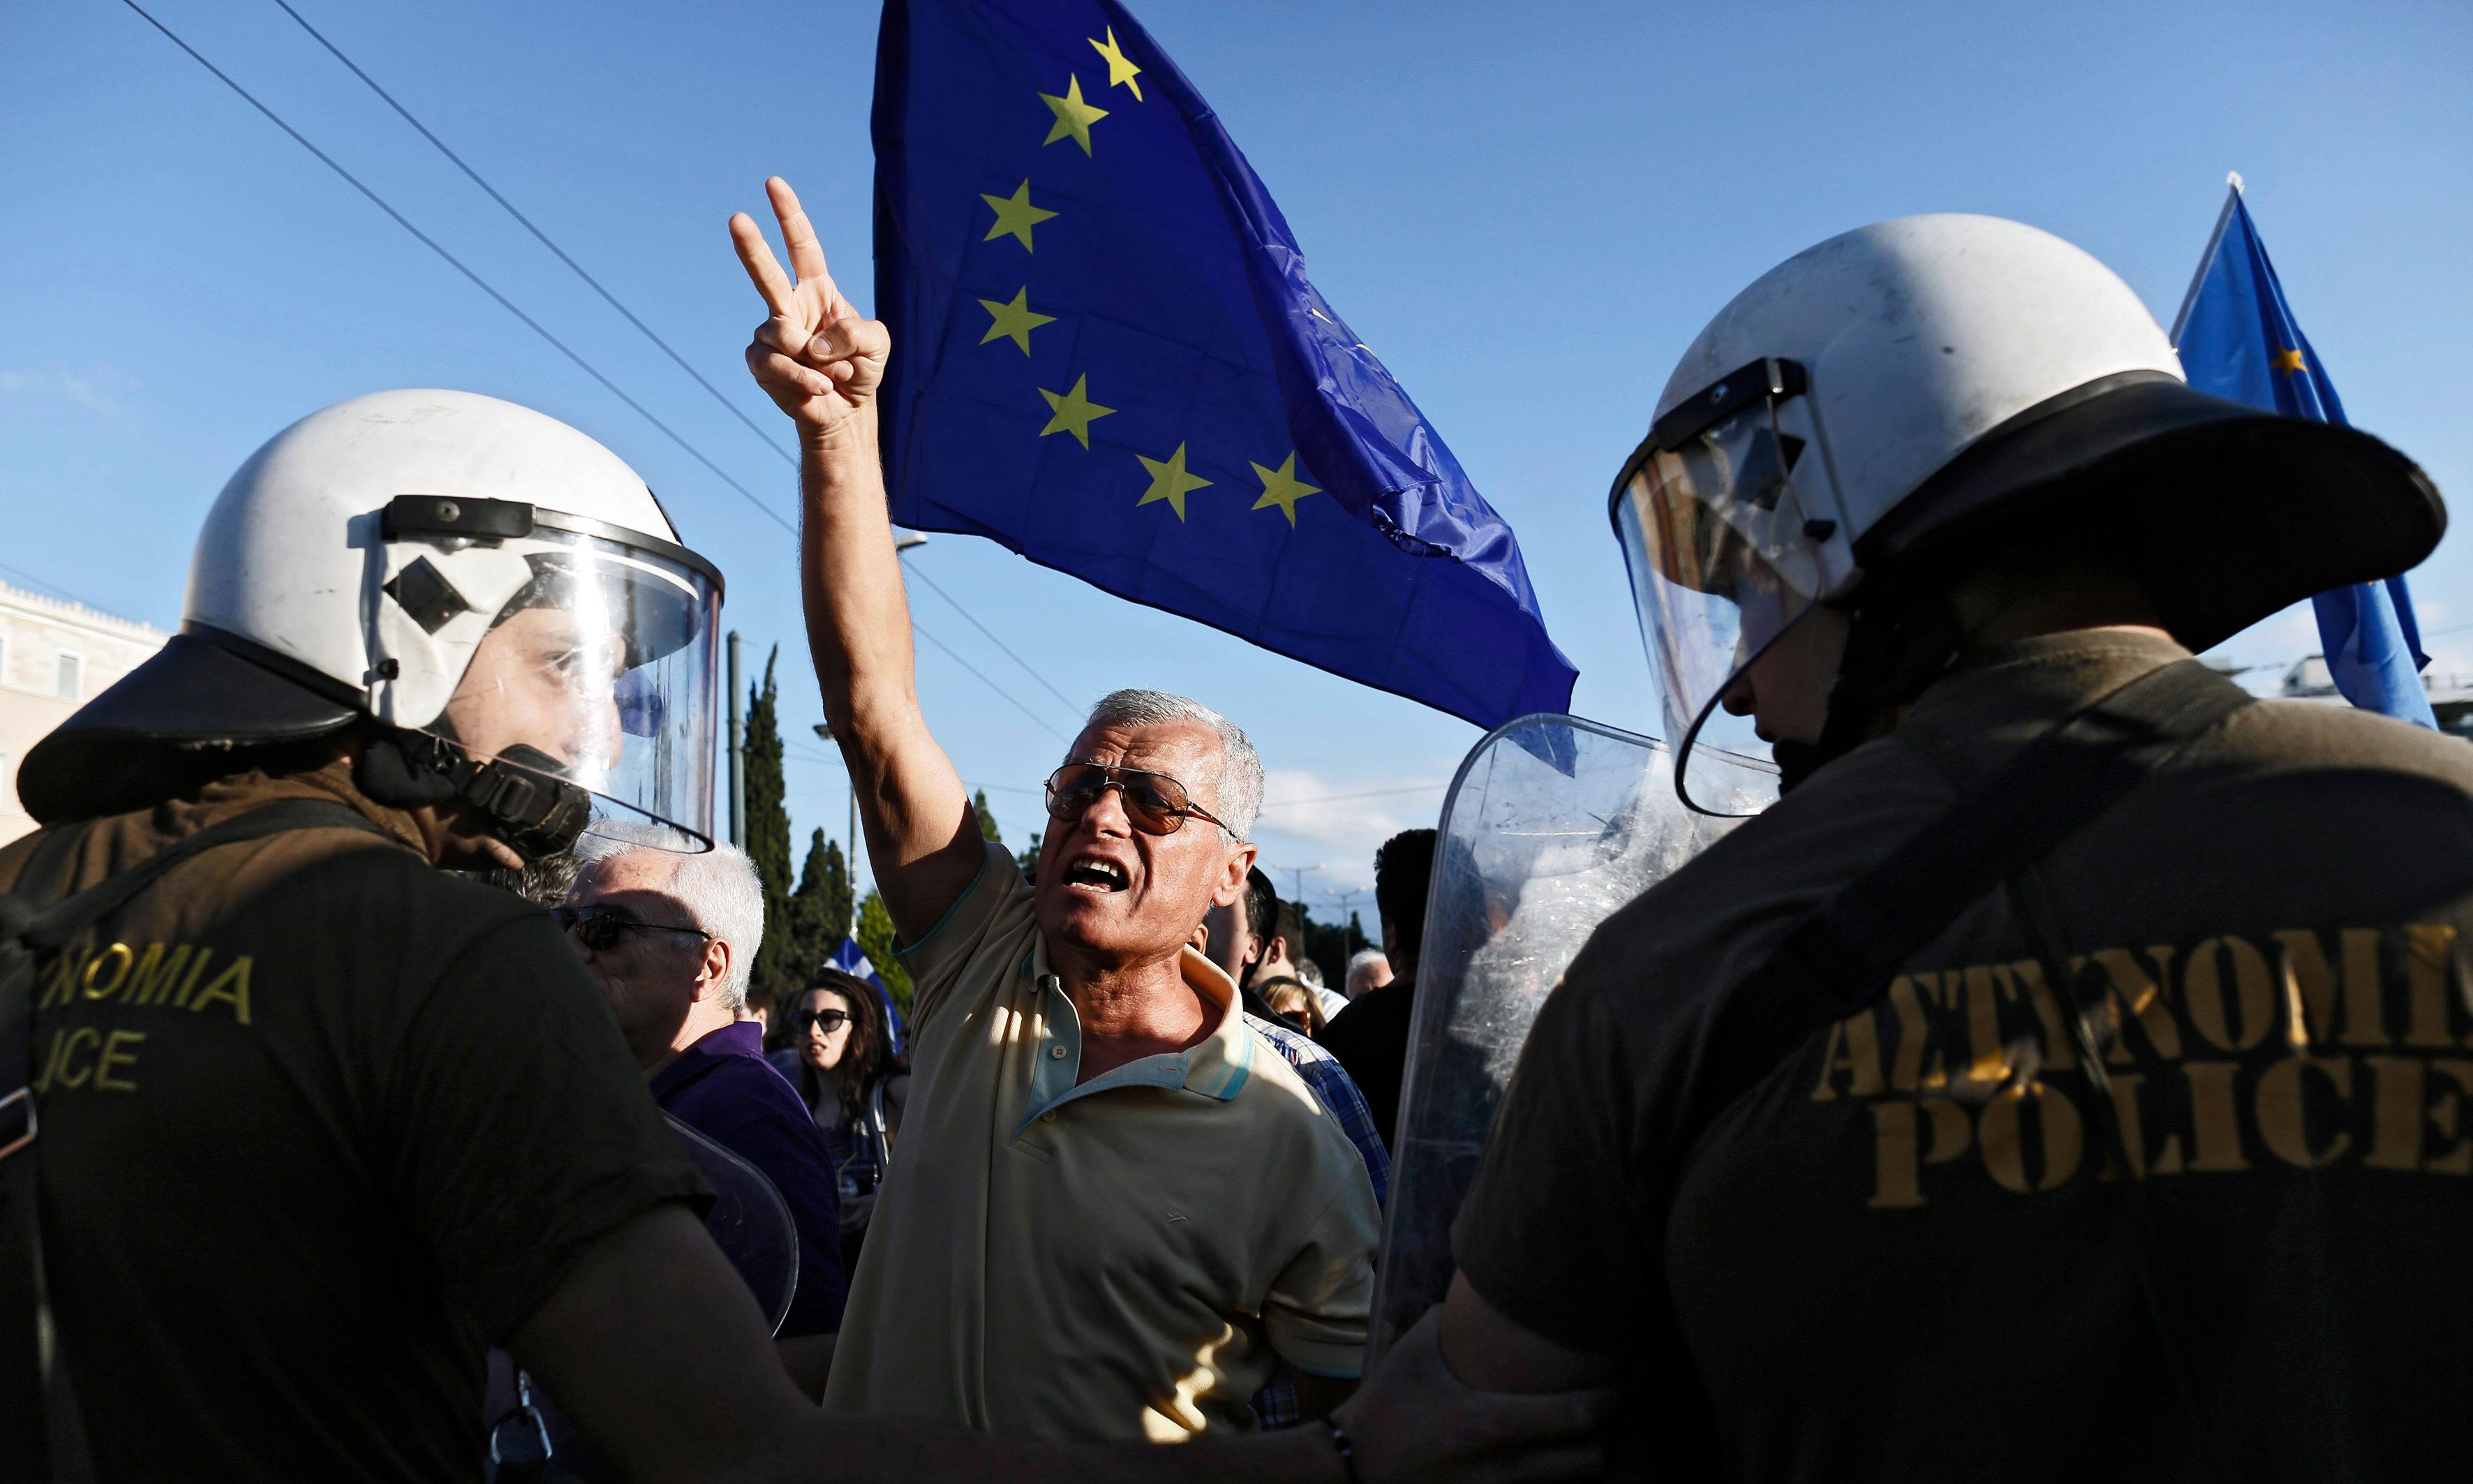 Hopes for Greece bailout deal rise sharply as Athens gives ground